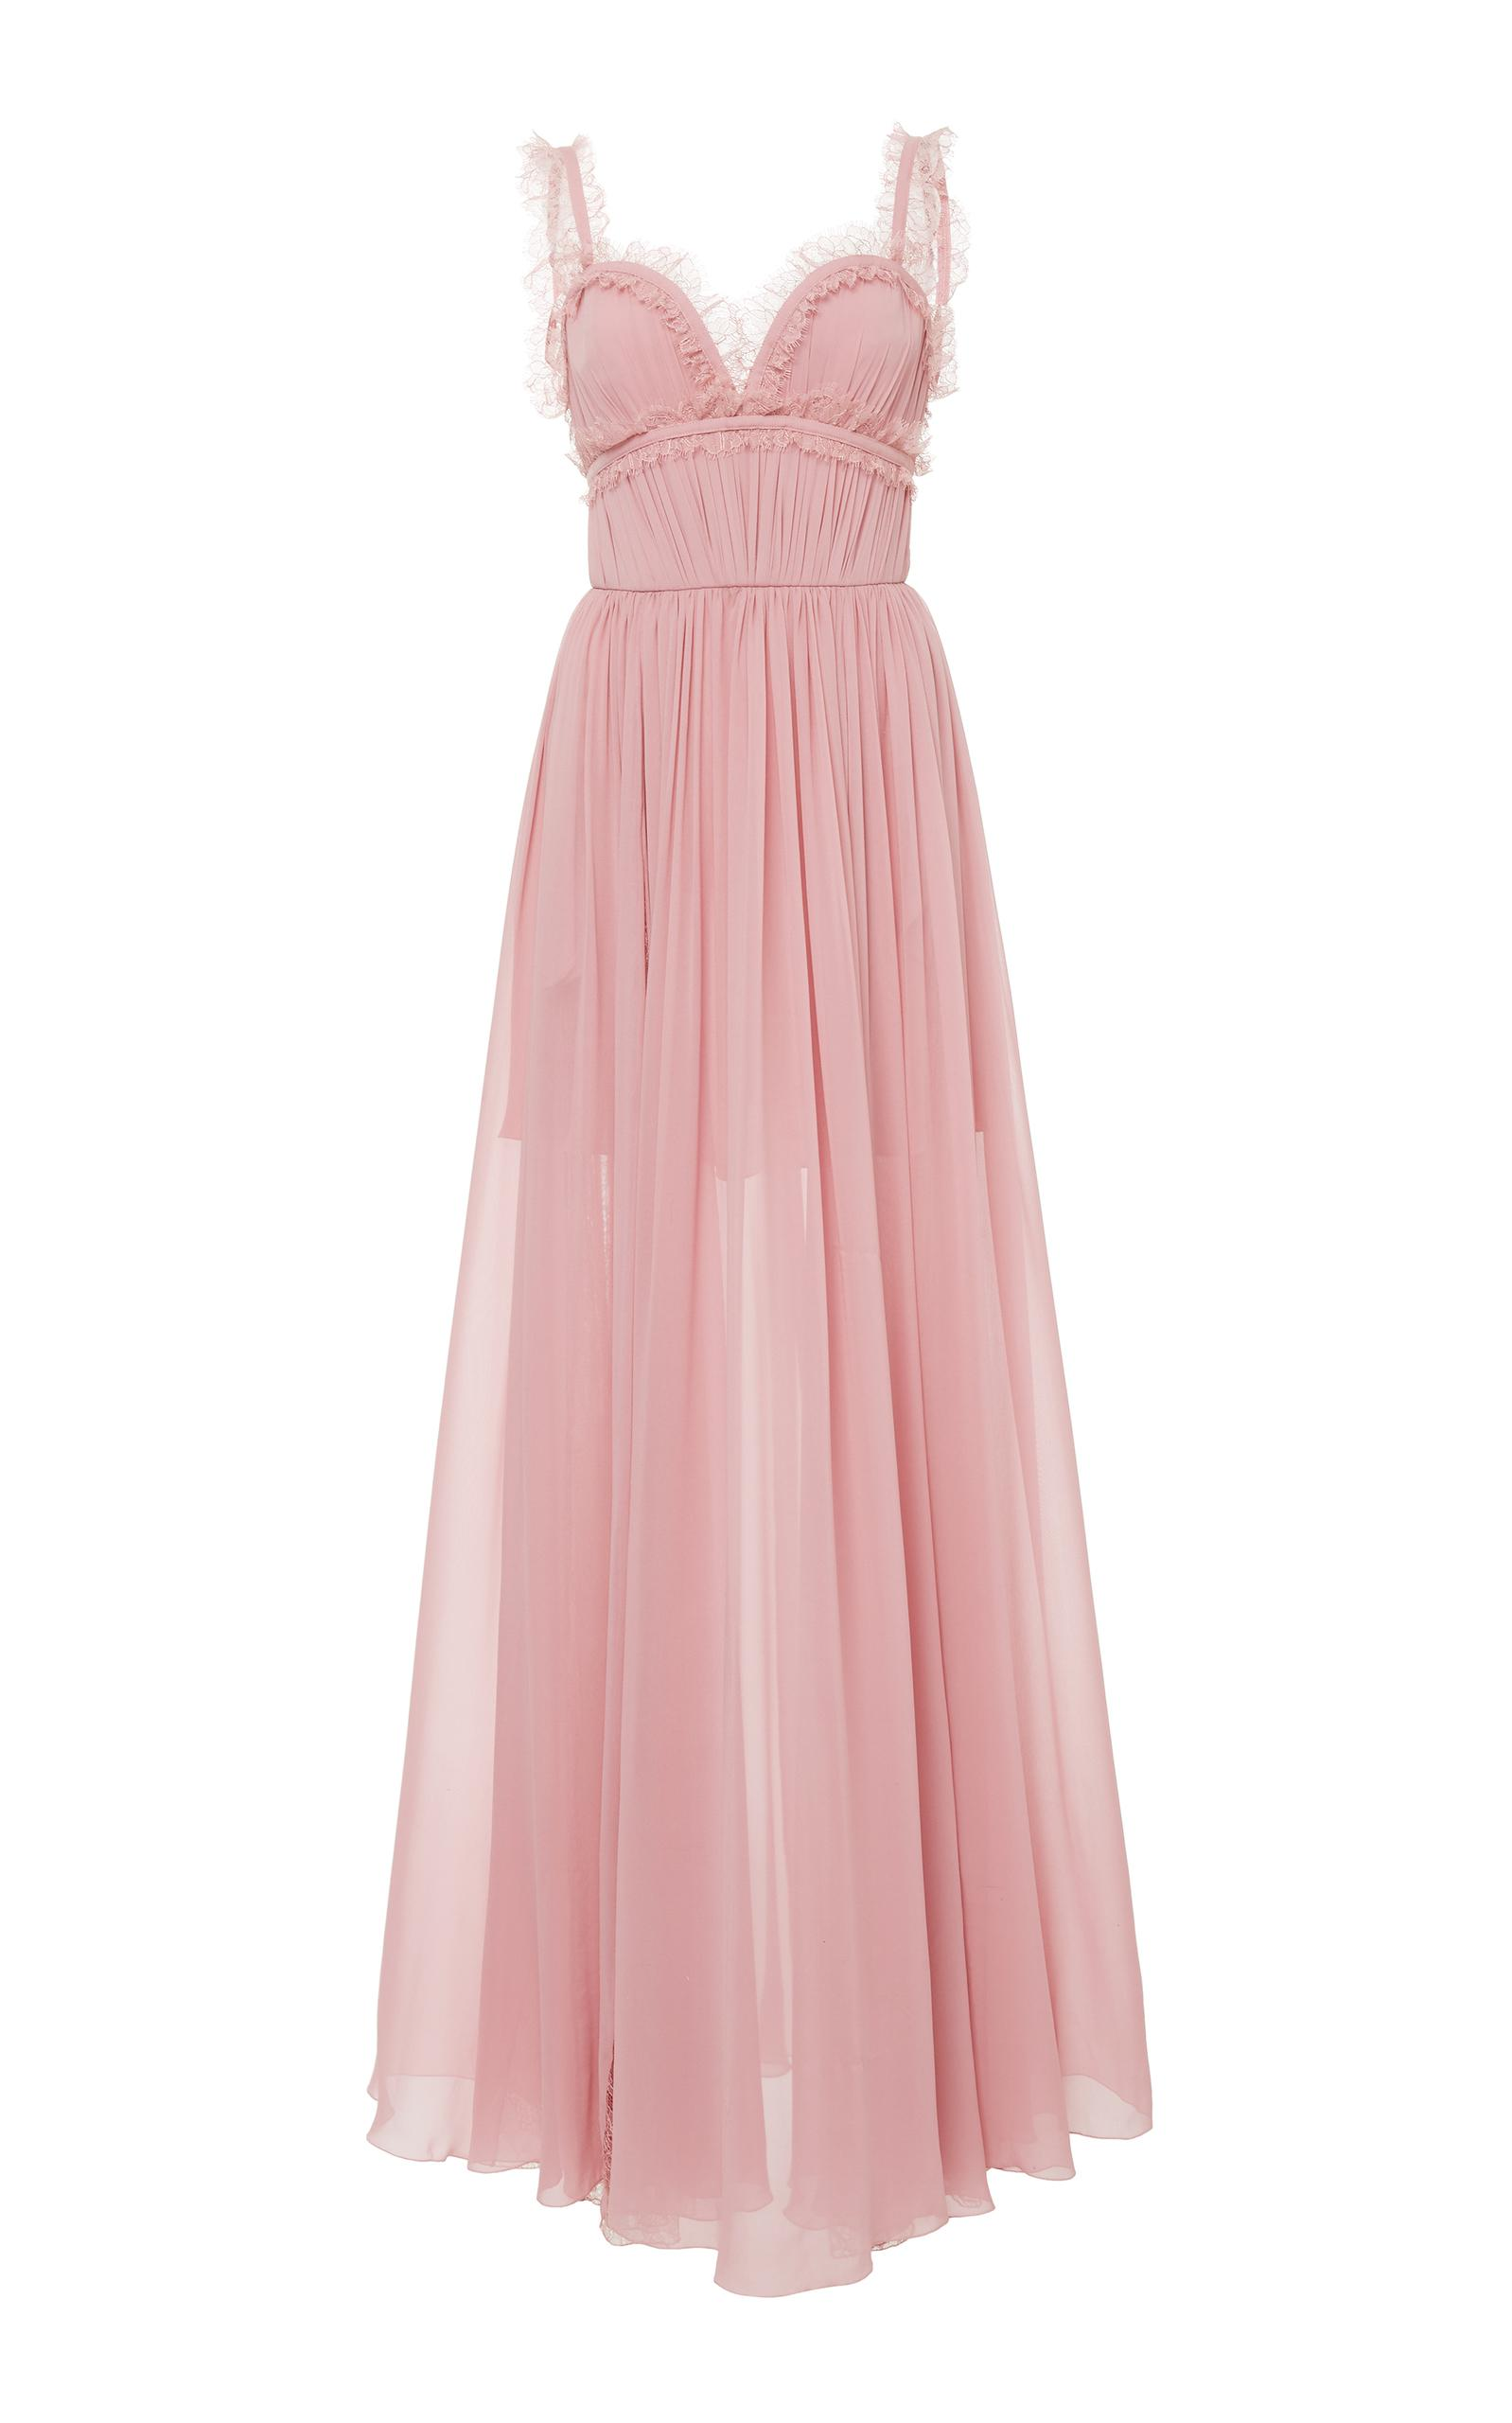 Lyst - Elie saab Sleeveless Embroidered Gown in Pink 7bd8a20e4